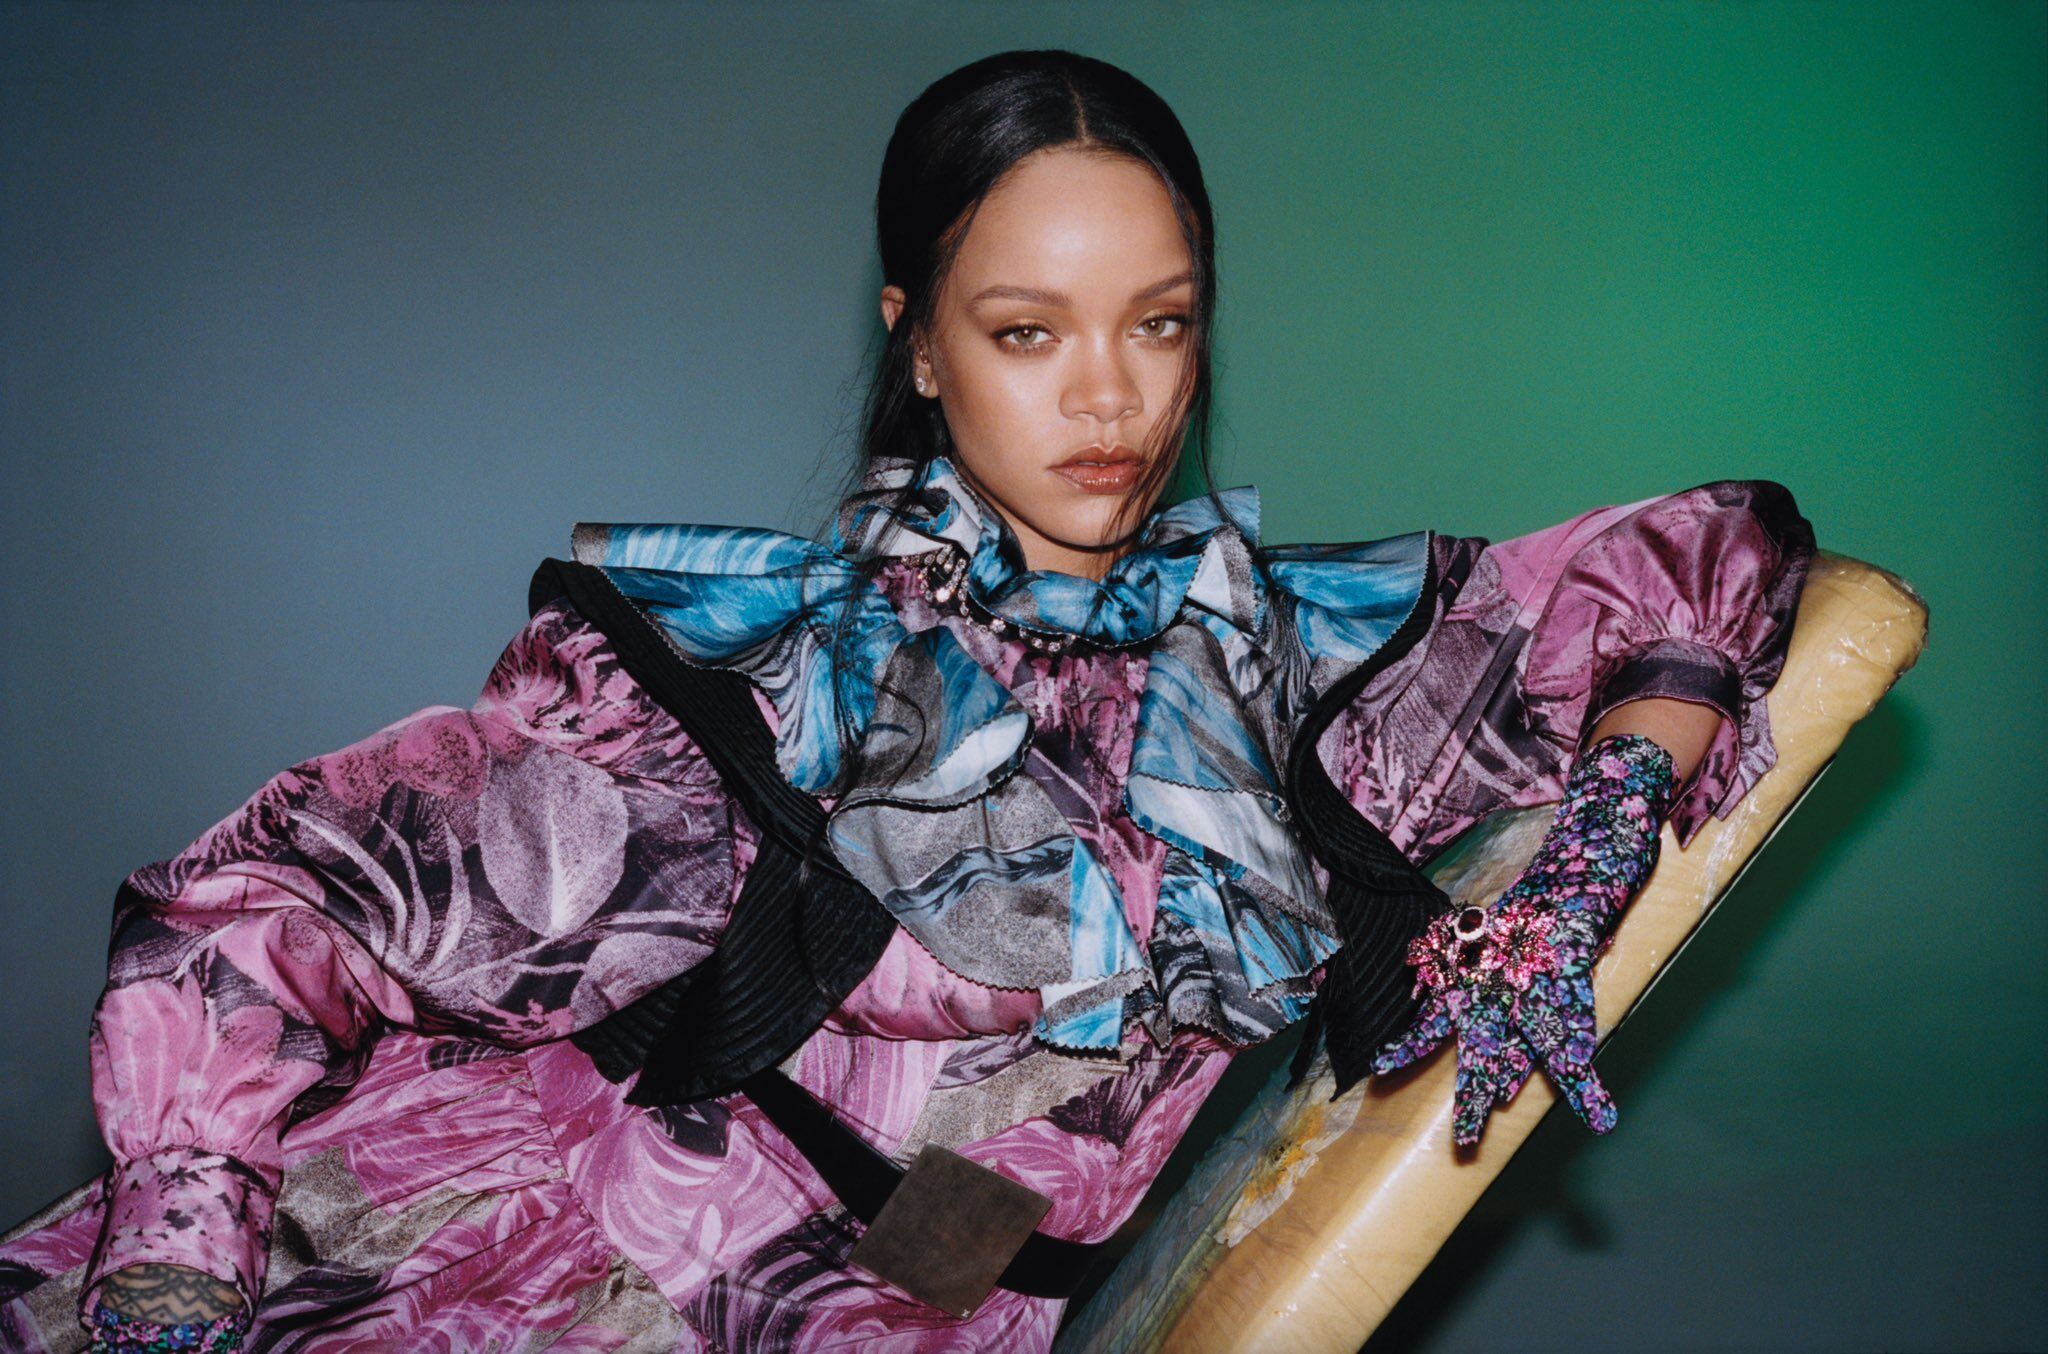 Singer Rihannas support to farmers protest flares up Twitter